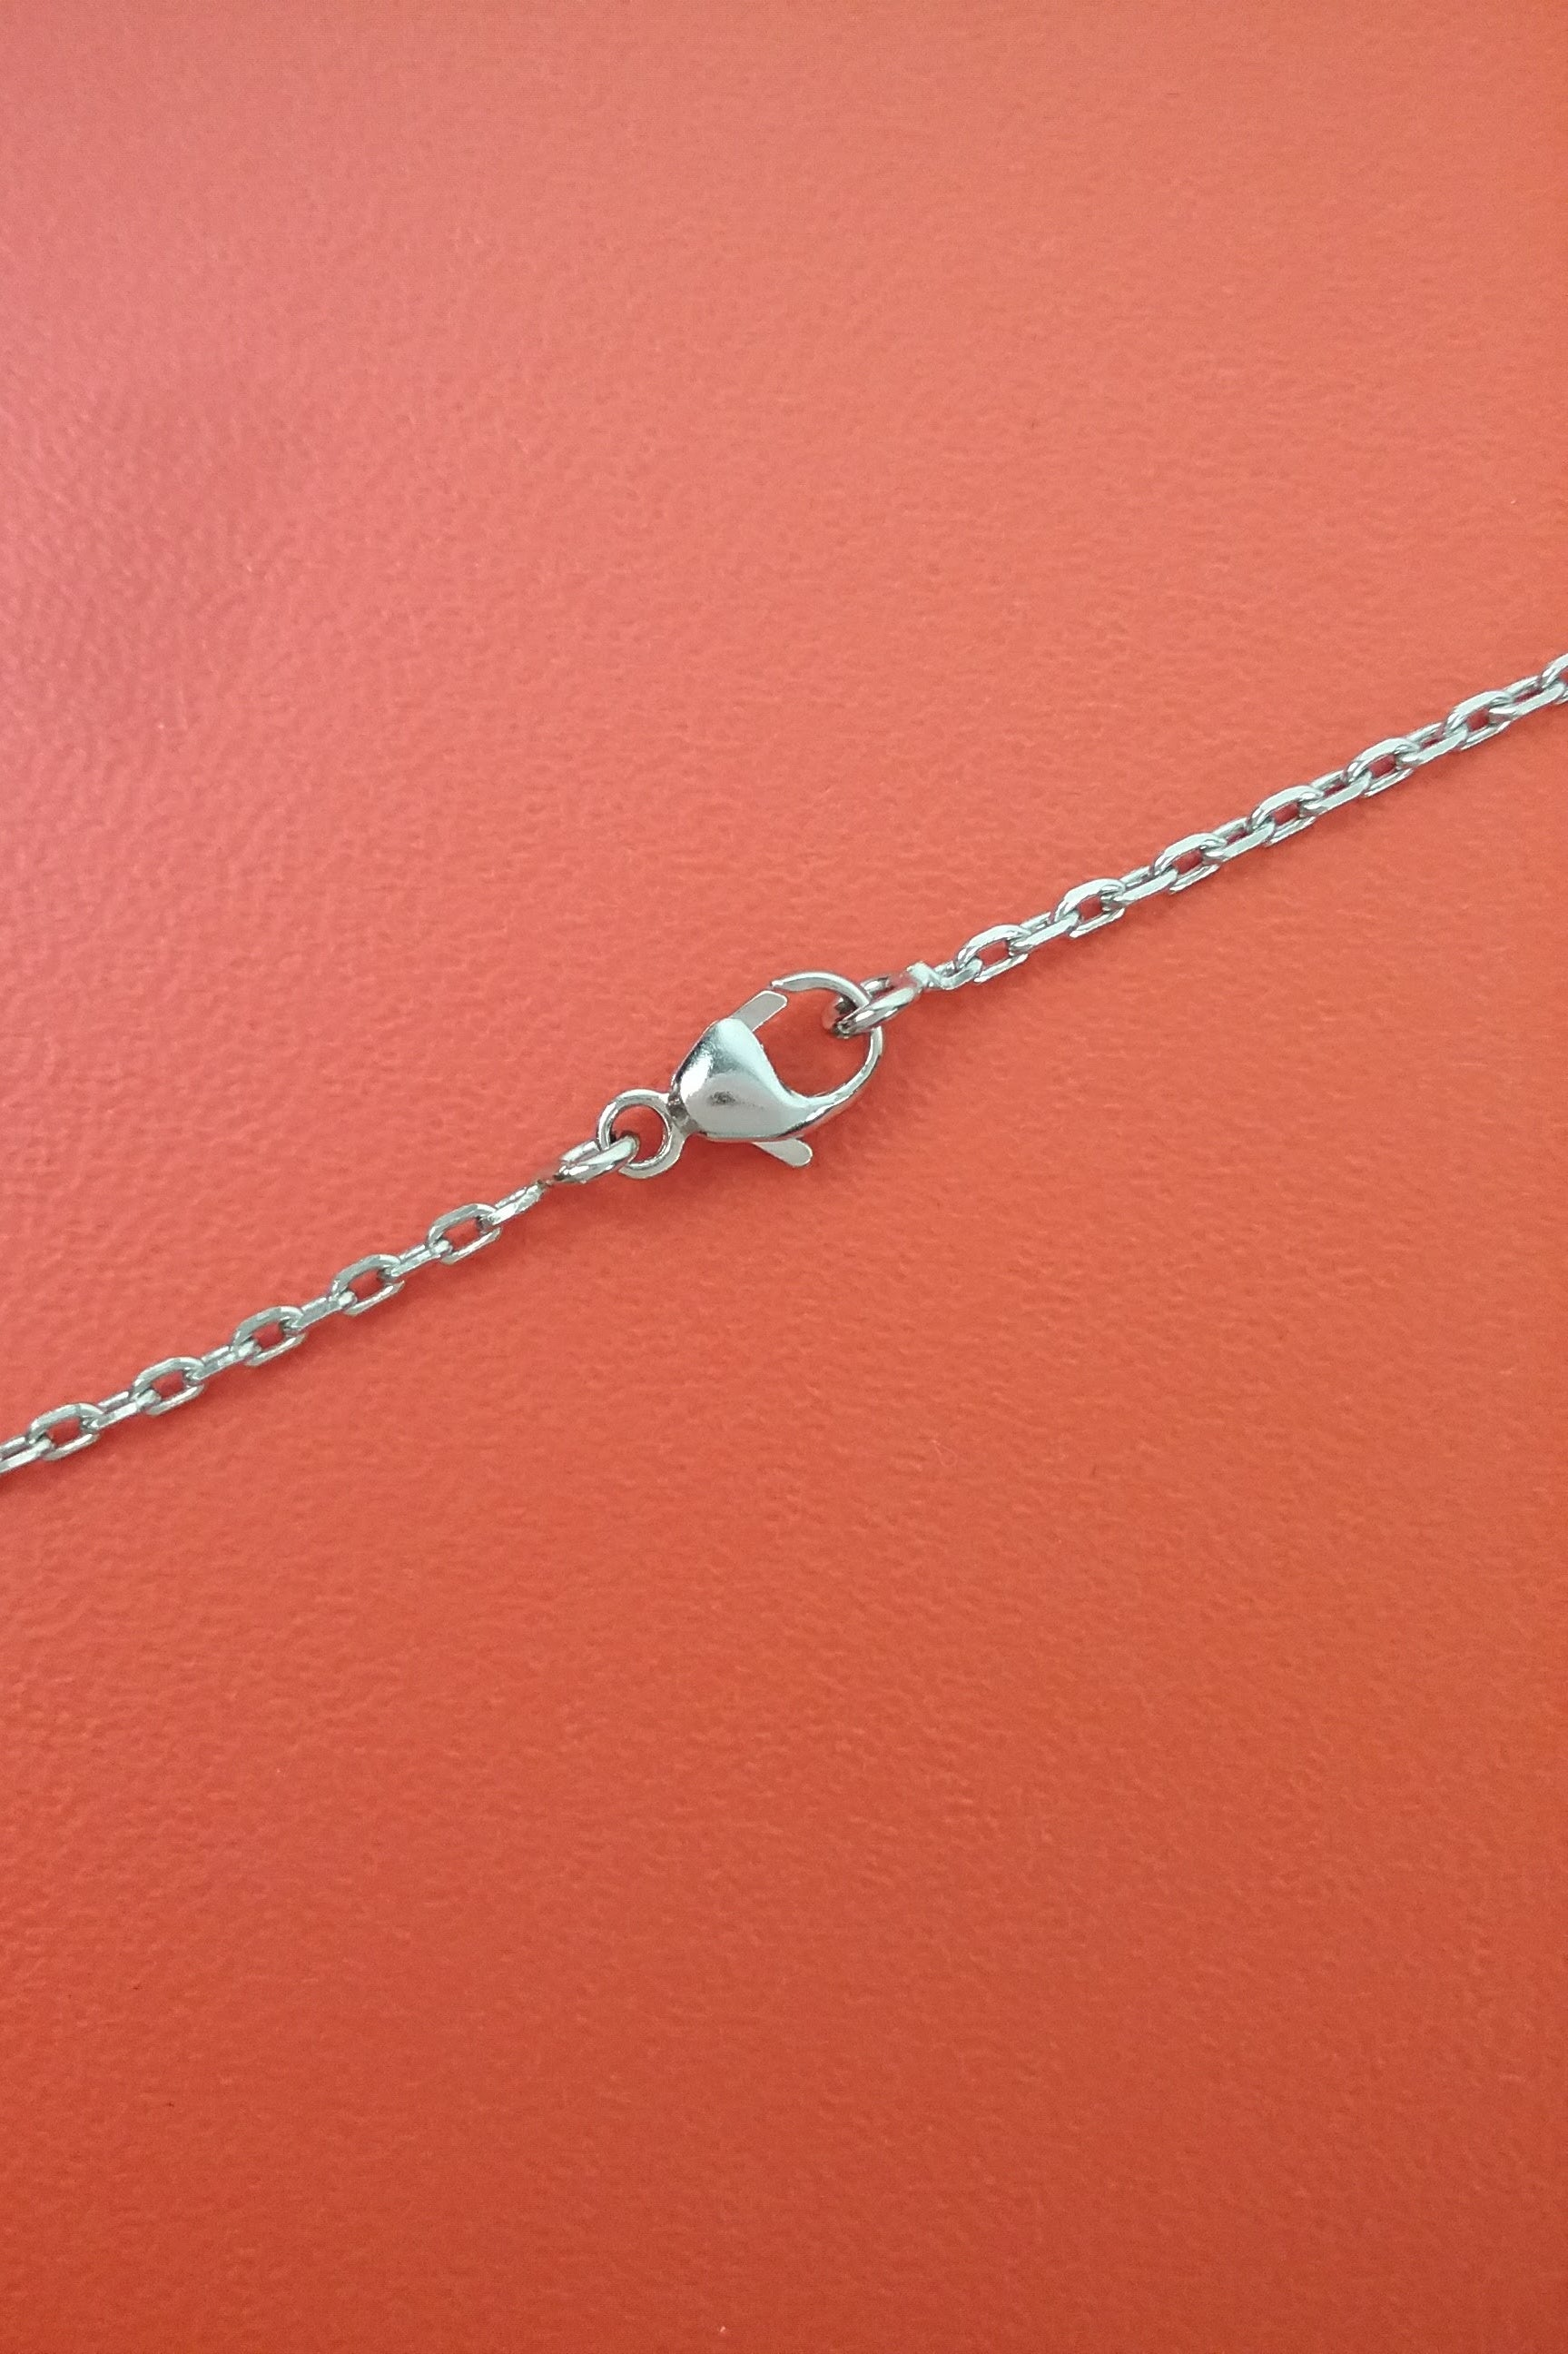 Framboise Chaine d'Ancre Pendant On Chain PHW